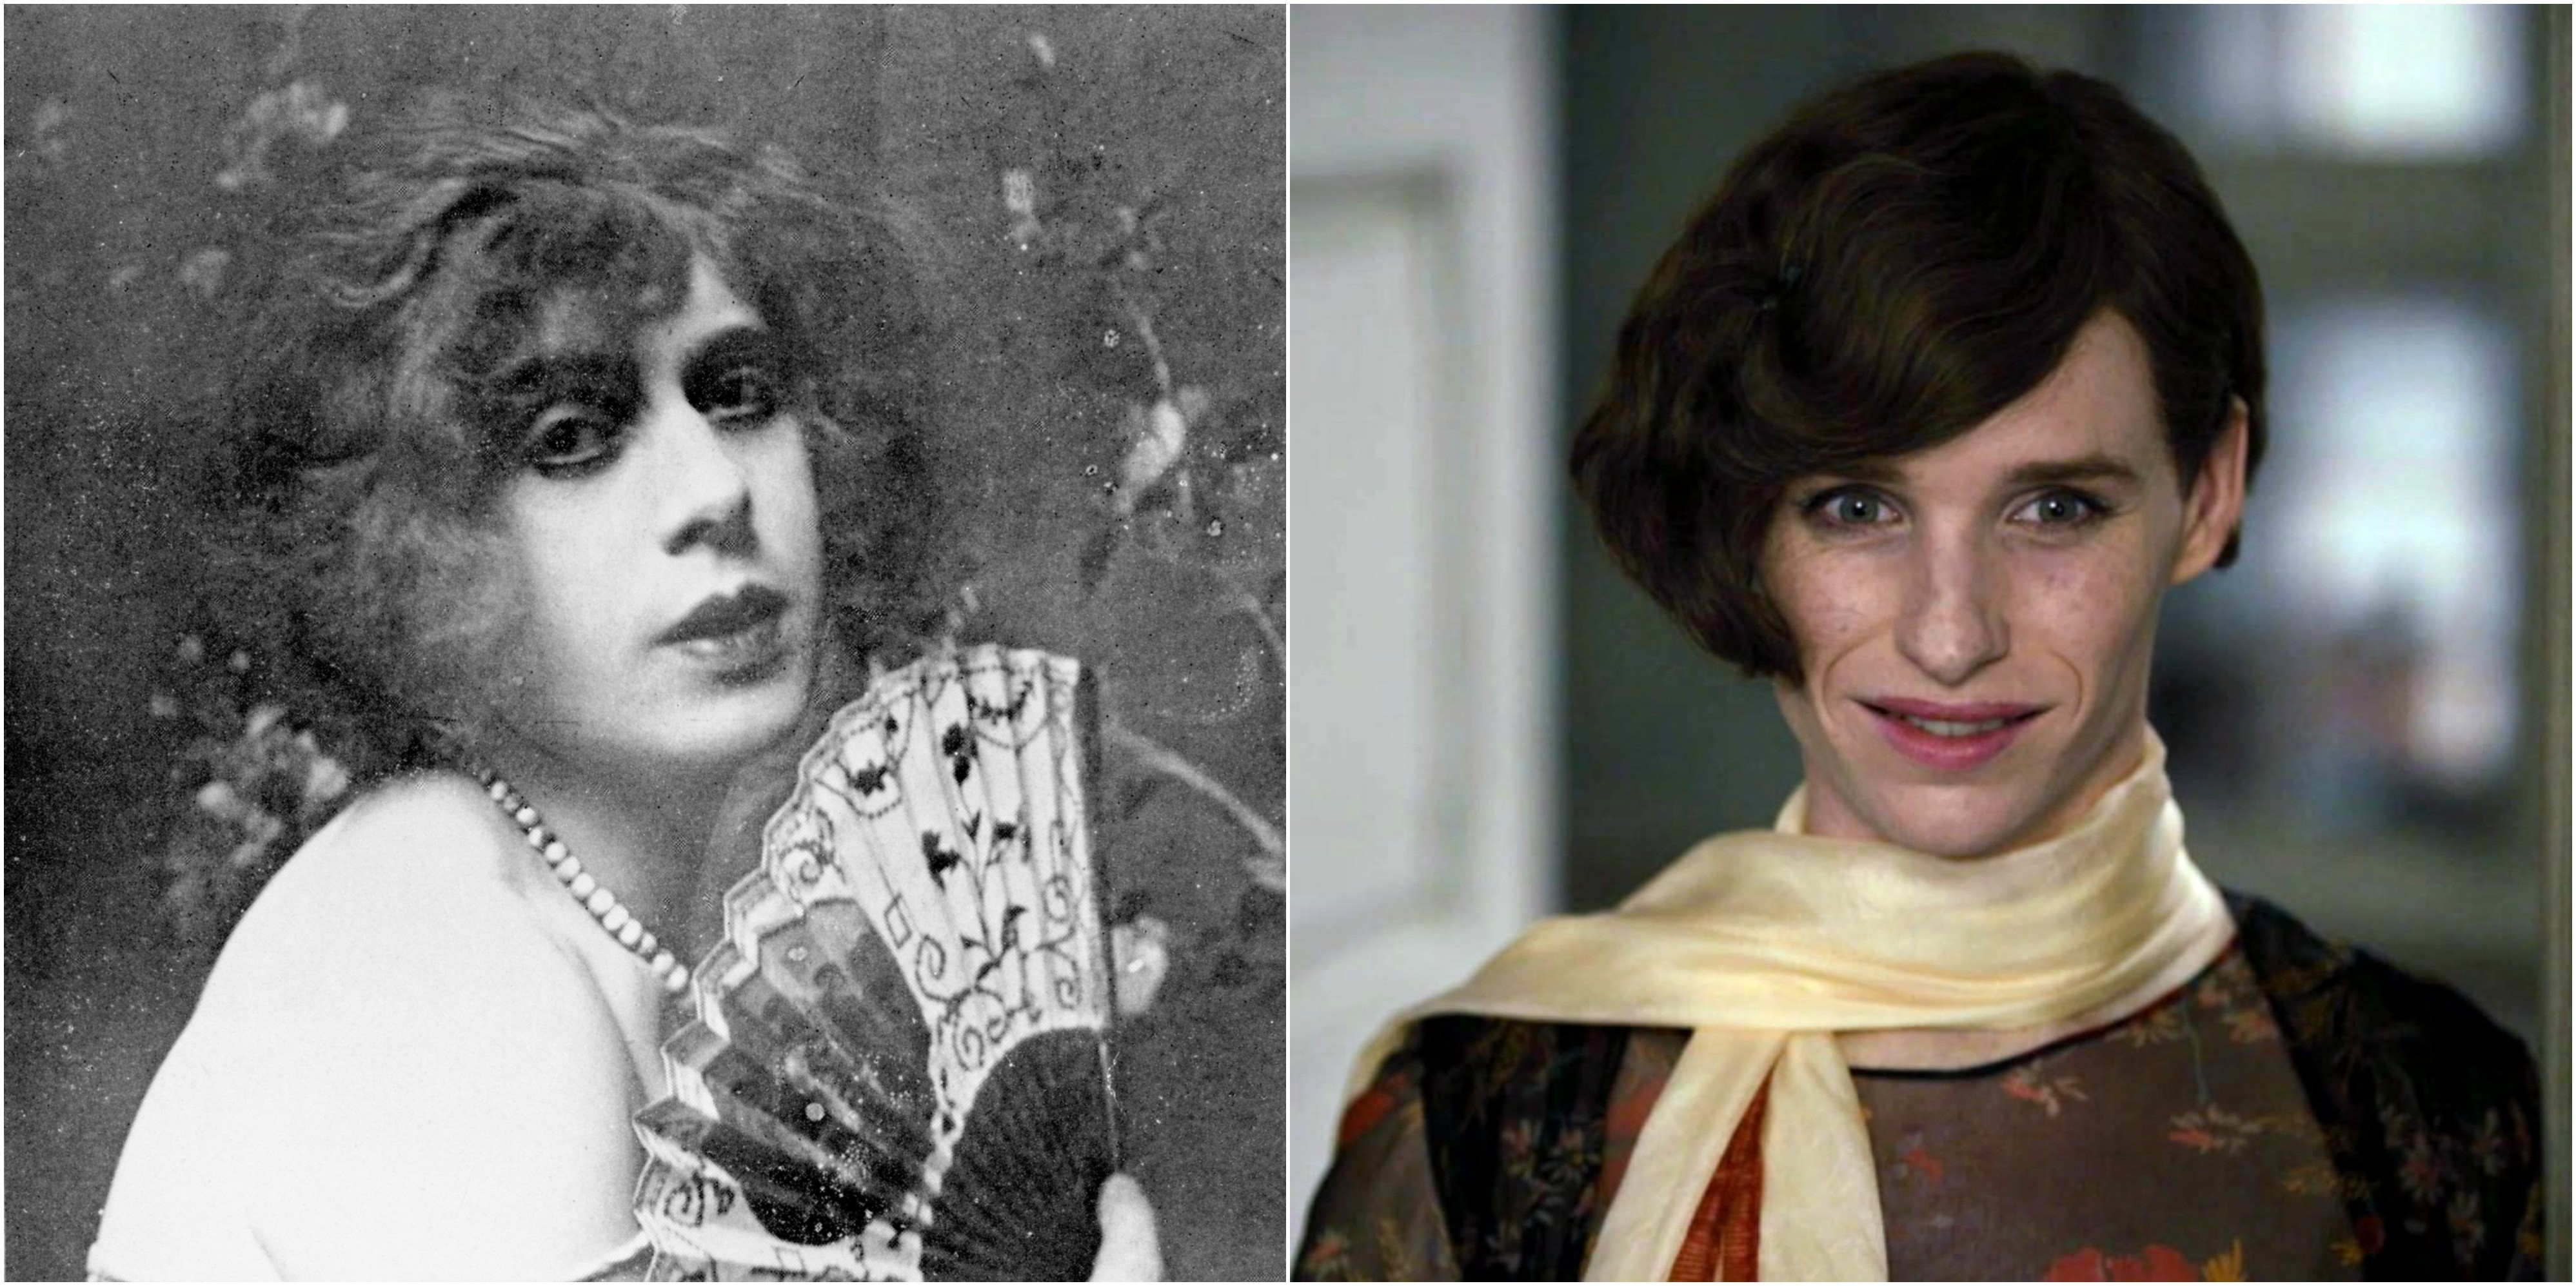 """Lili Elbe and Eddie Redmayne as Lili Elbe in """"The Danish Girl"""" 